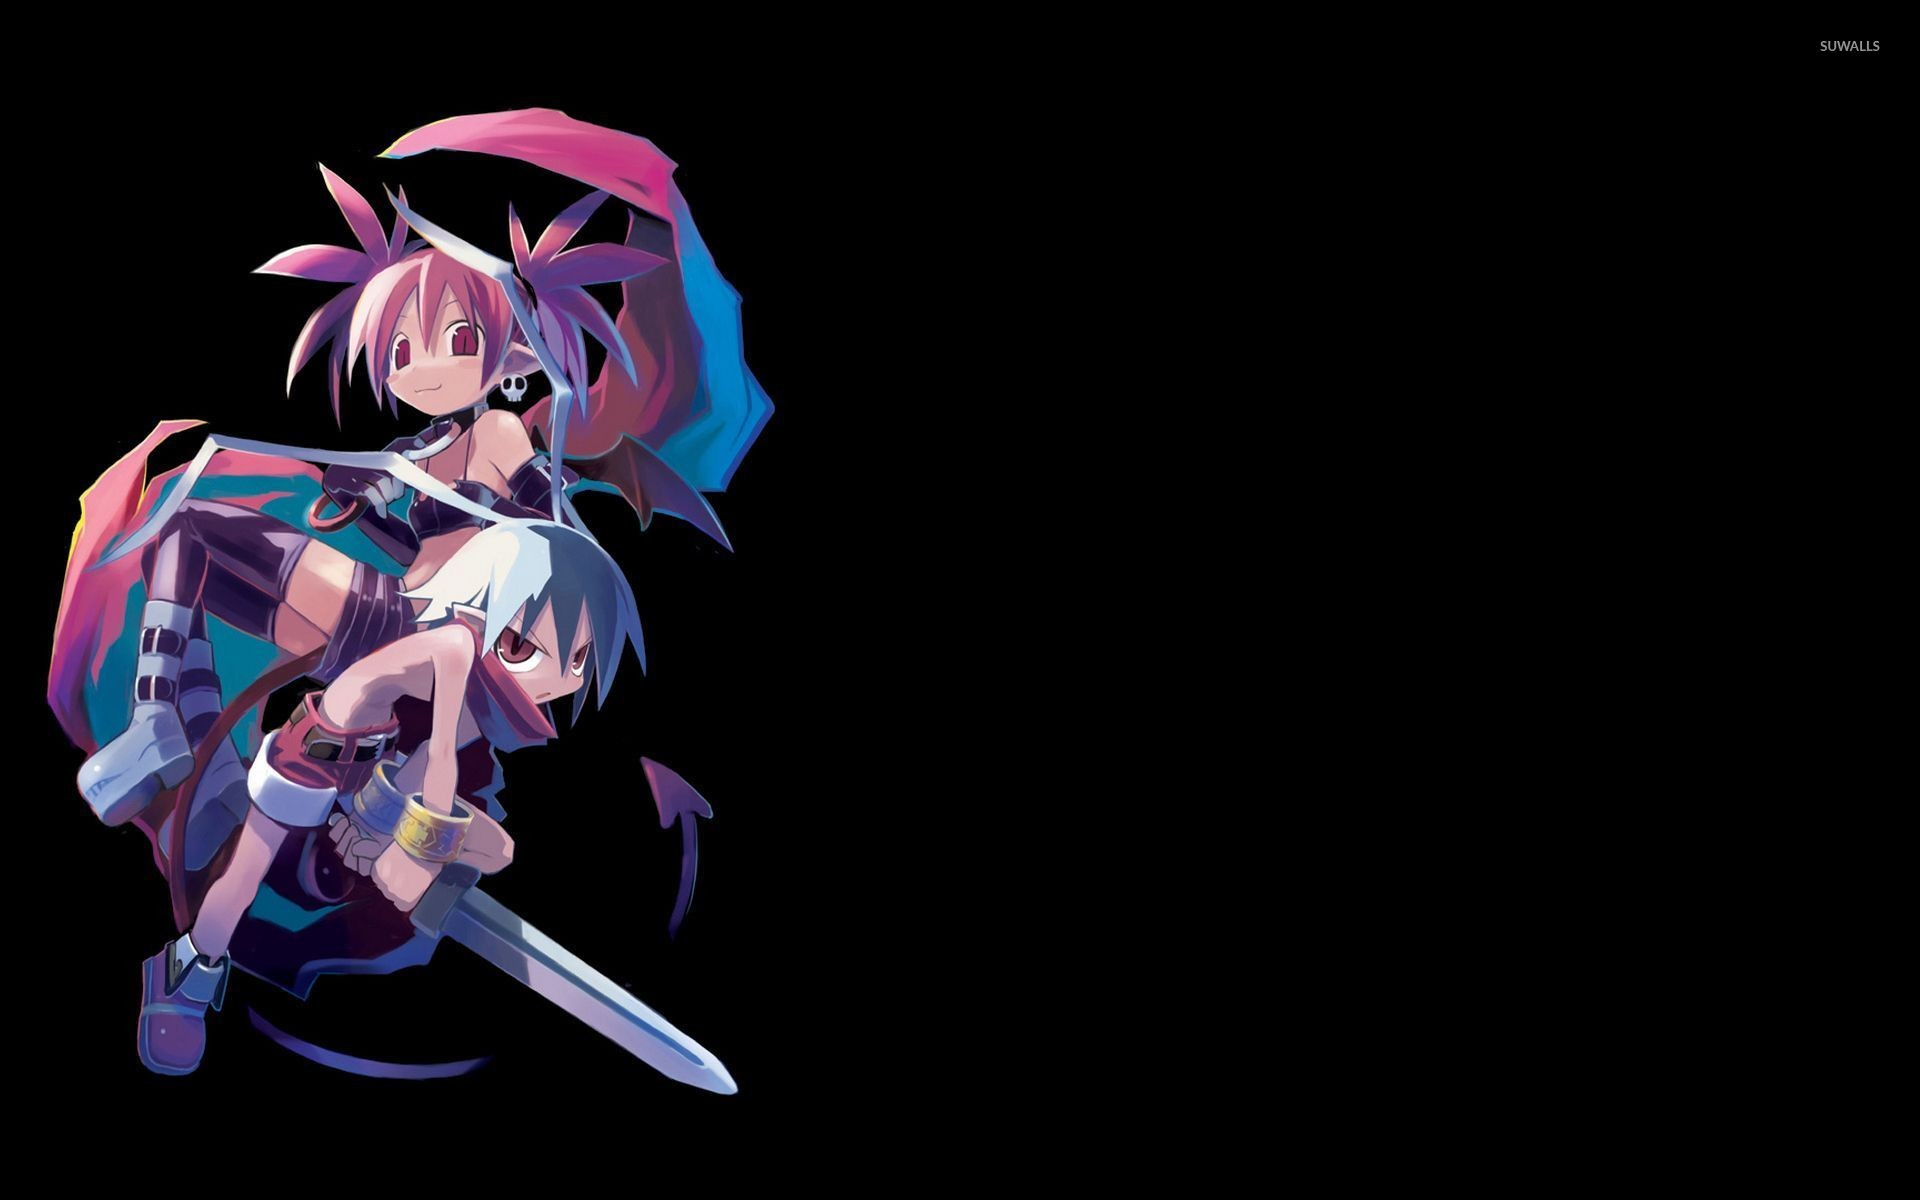 1920x1200 Disgaea wallpaper